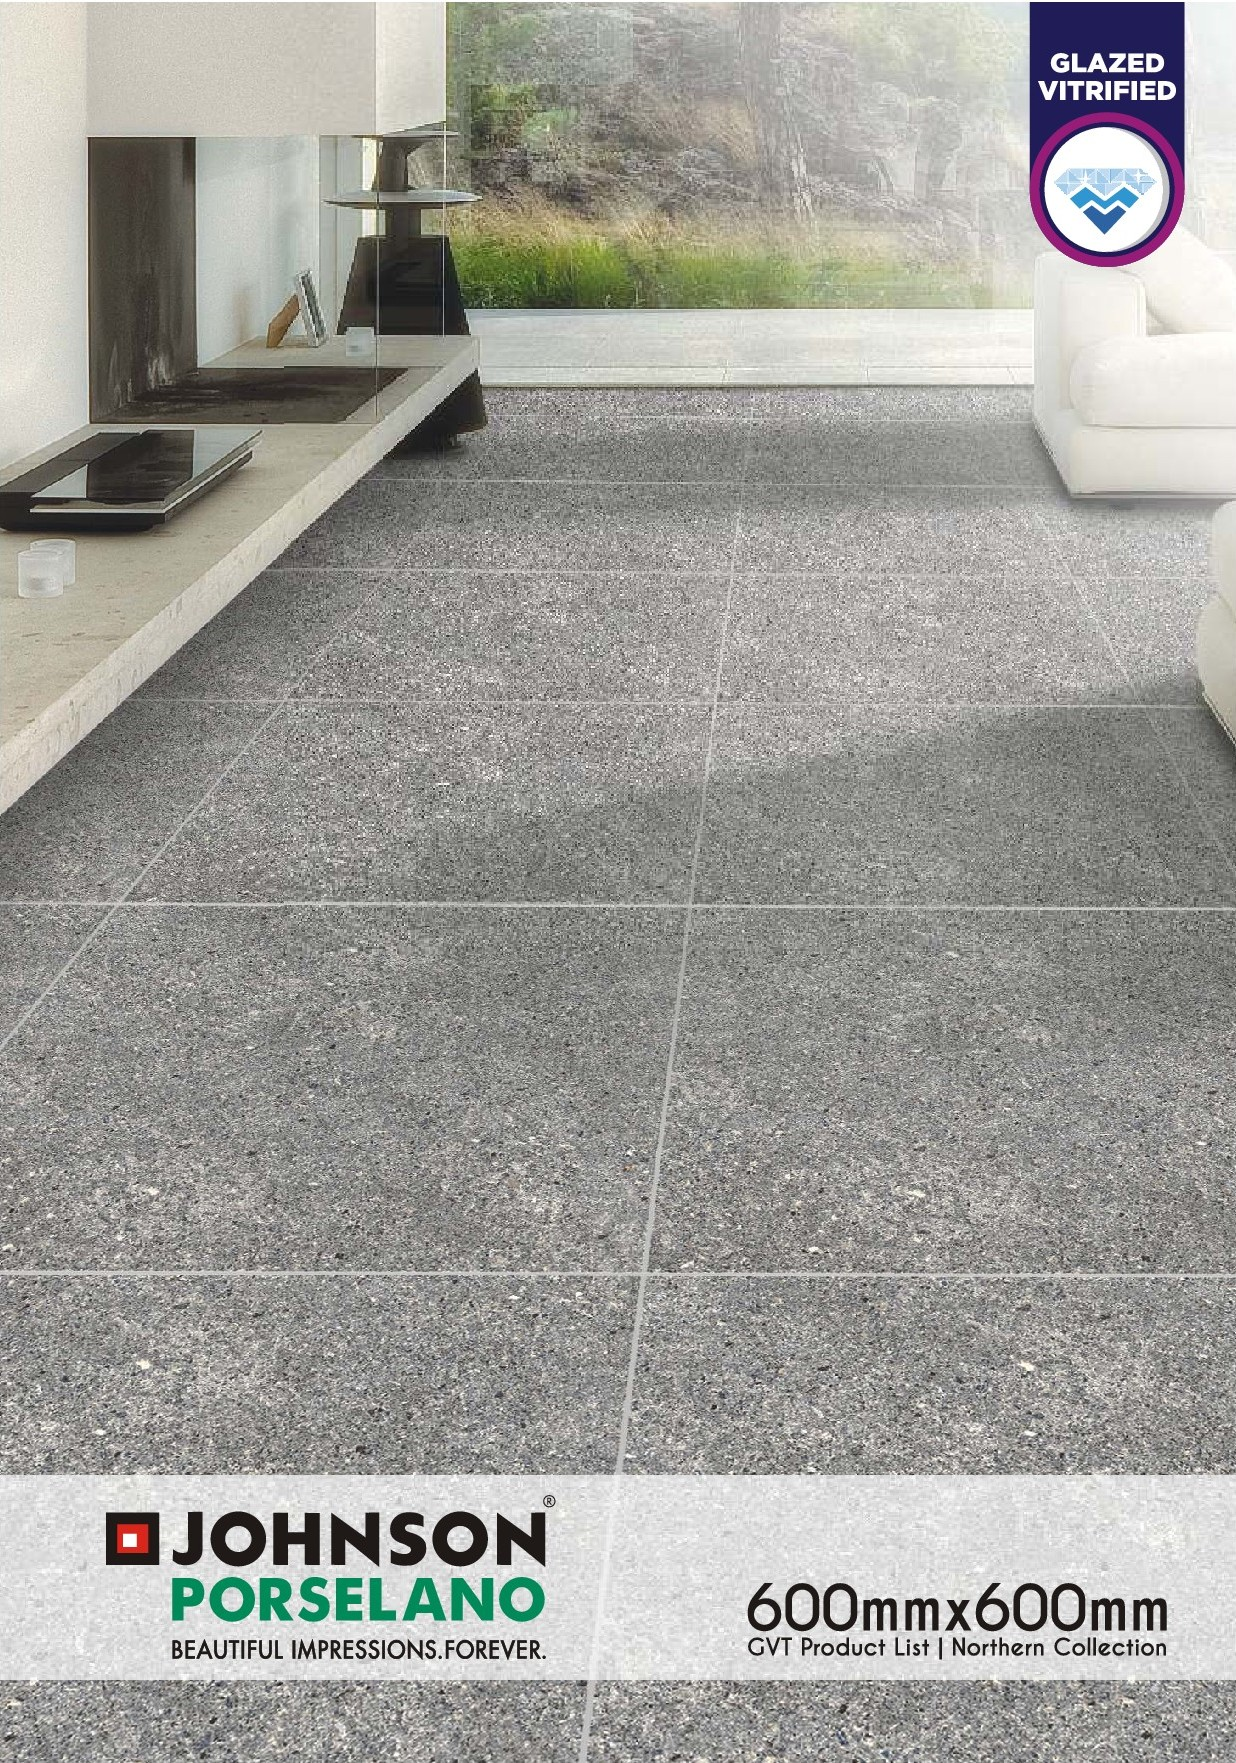 Johnson Tiles Catalogues Ceramic Vitrified Glazed Vitrified At